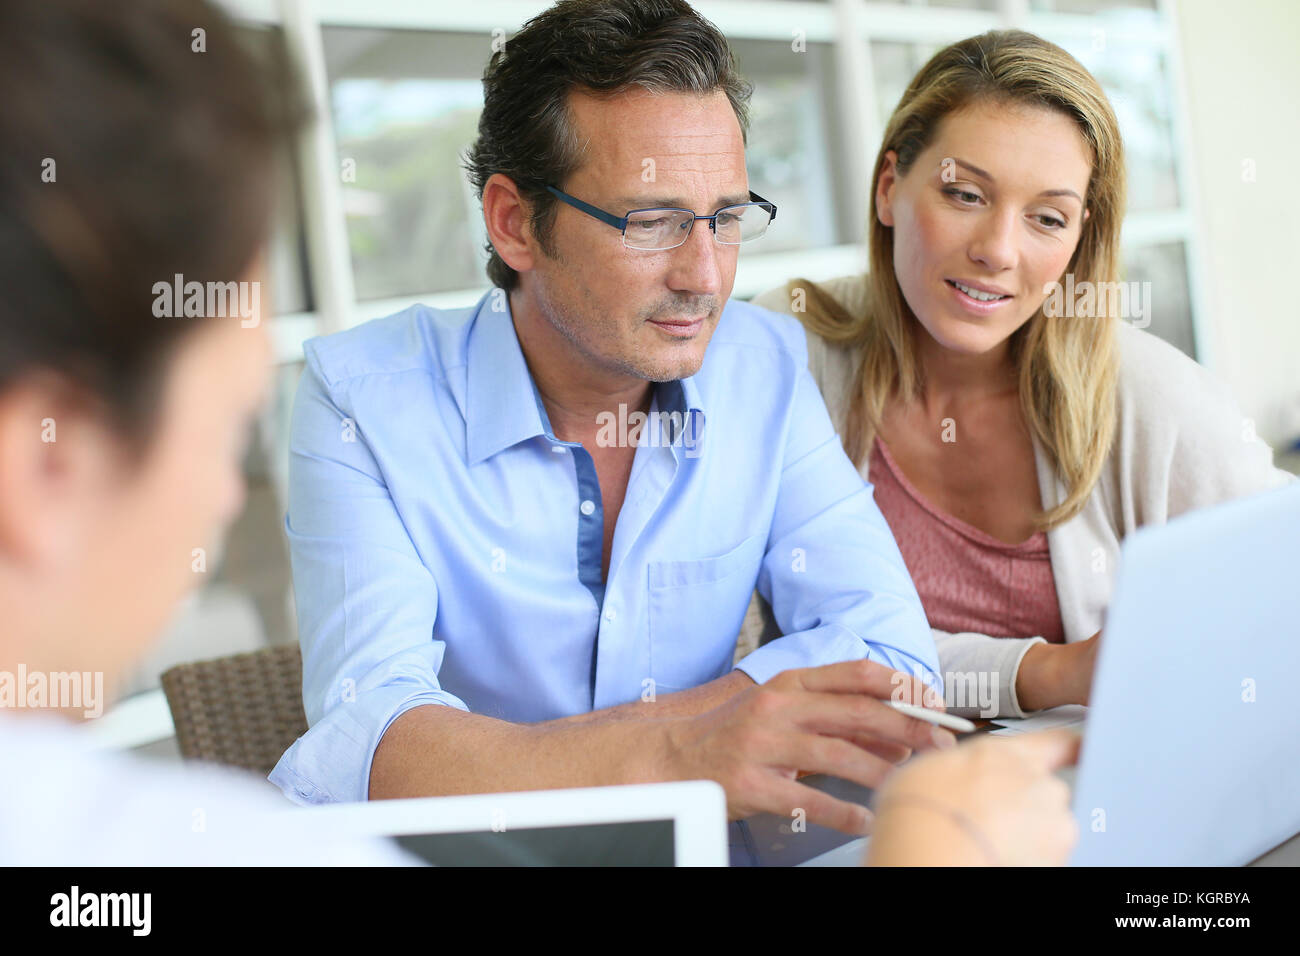 Business people meeting and using digital tablet - Stock Image